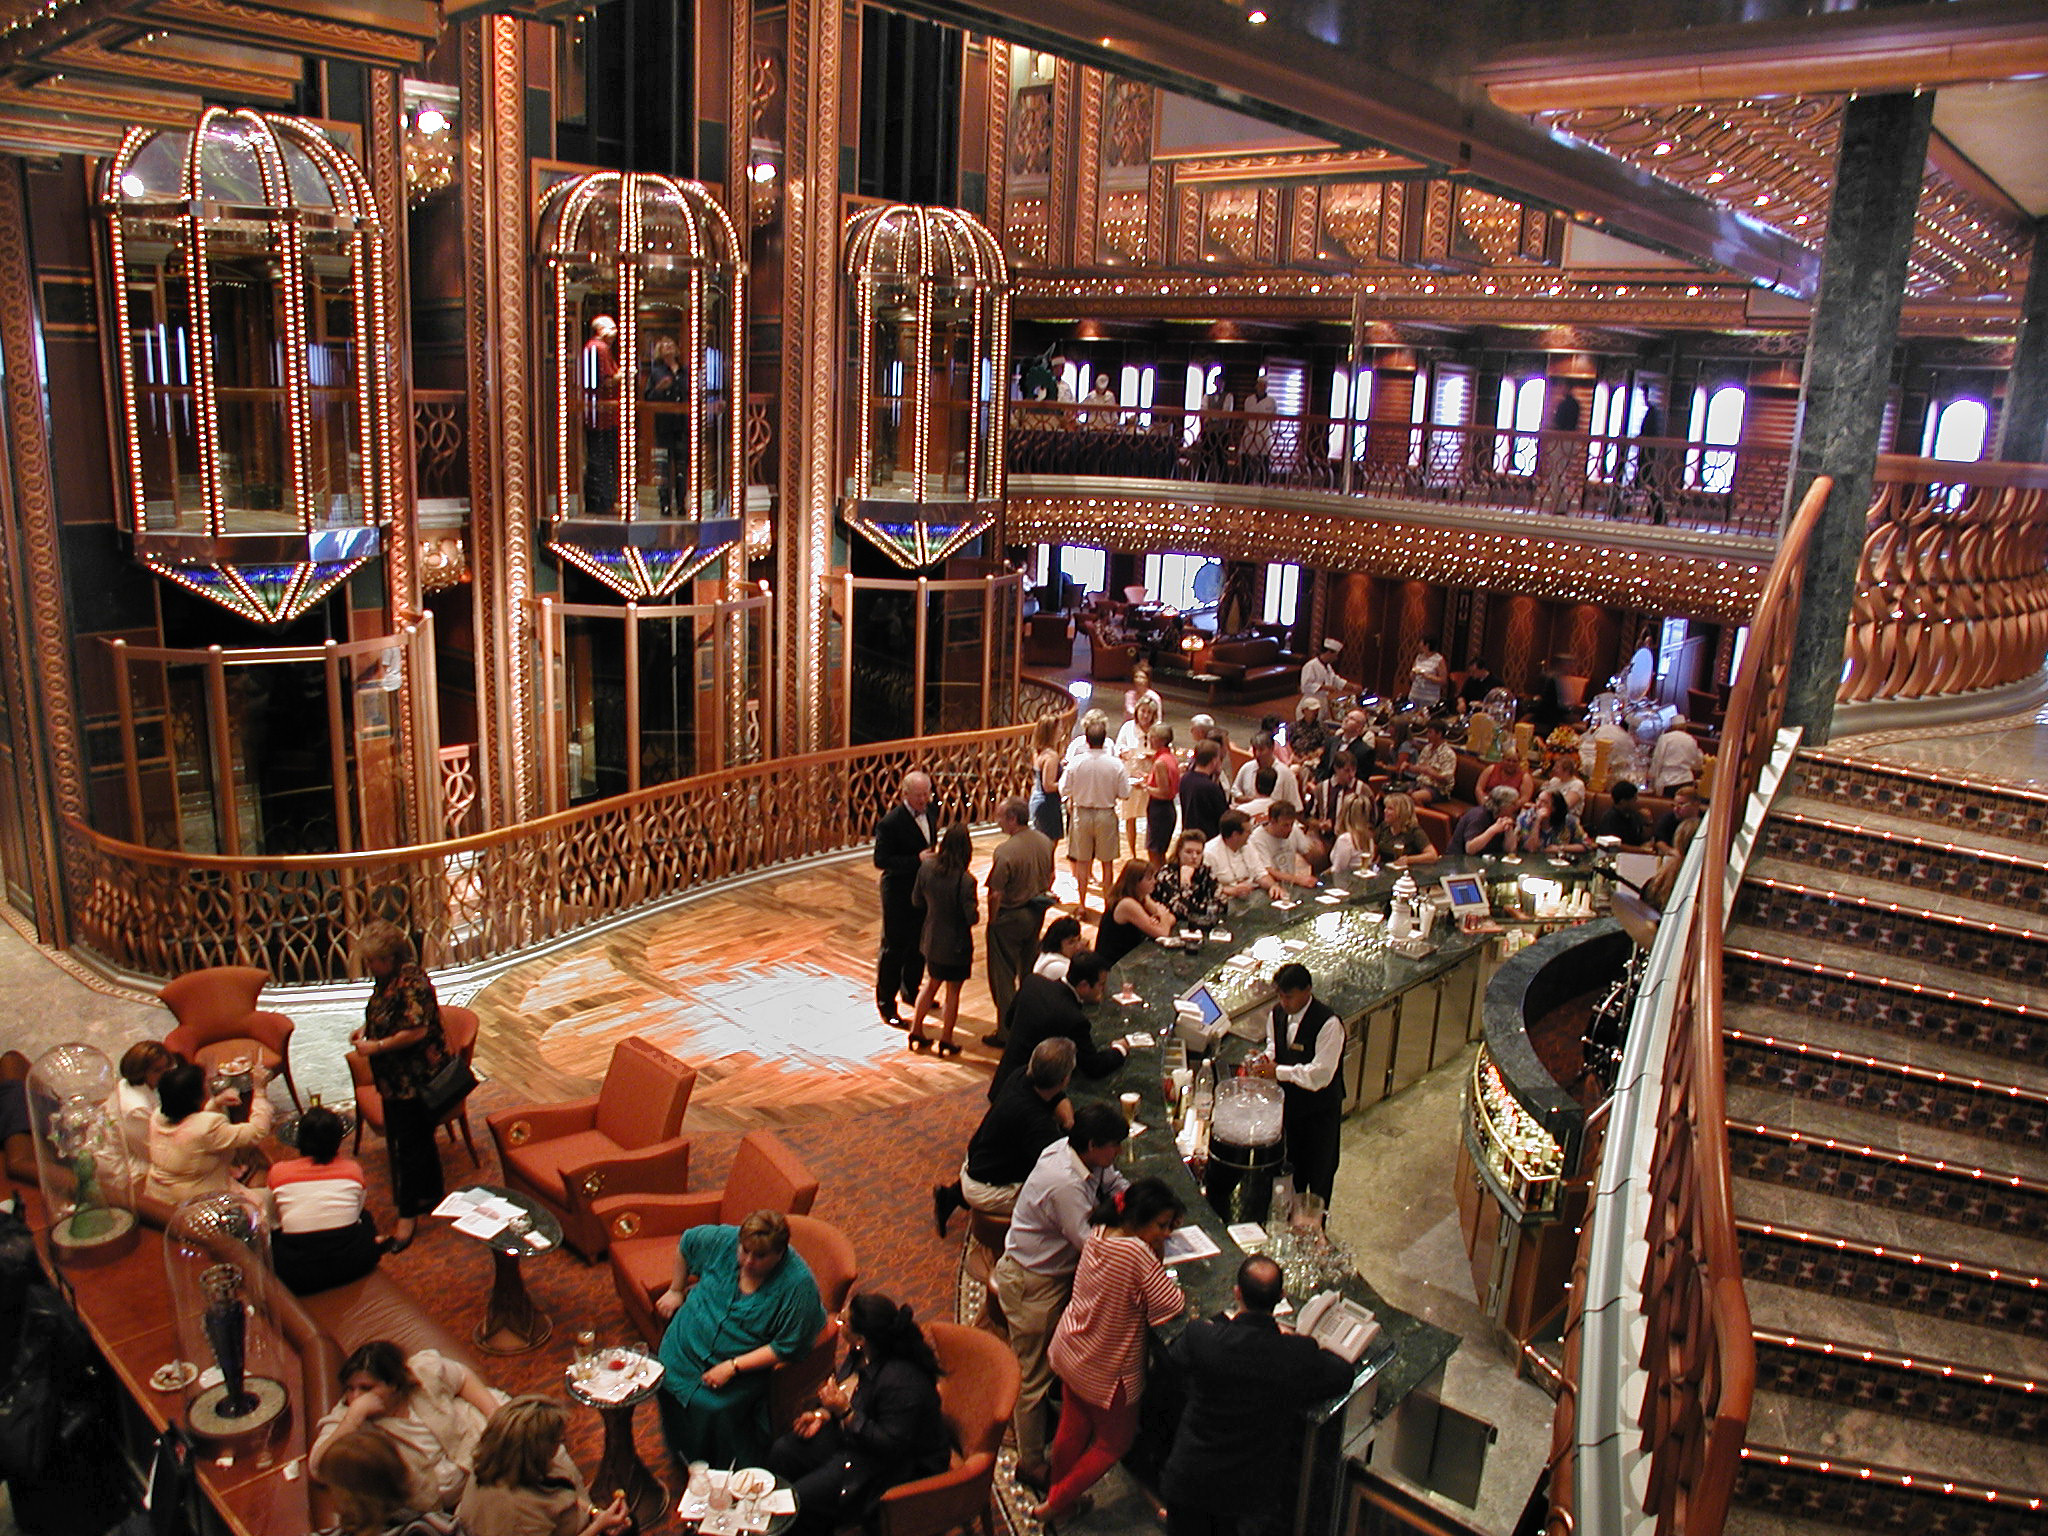 Voyager Of The Seas moreover Carnival Legend Cruise Ship as well The One Where Green Thunder Was Born On Carnival Spirit additionally Aruba Cruises additionally Os Carnival Vista Details 20150123 Story. on onboard carnival spirit ship